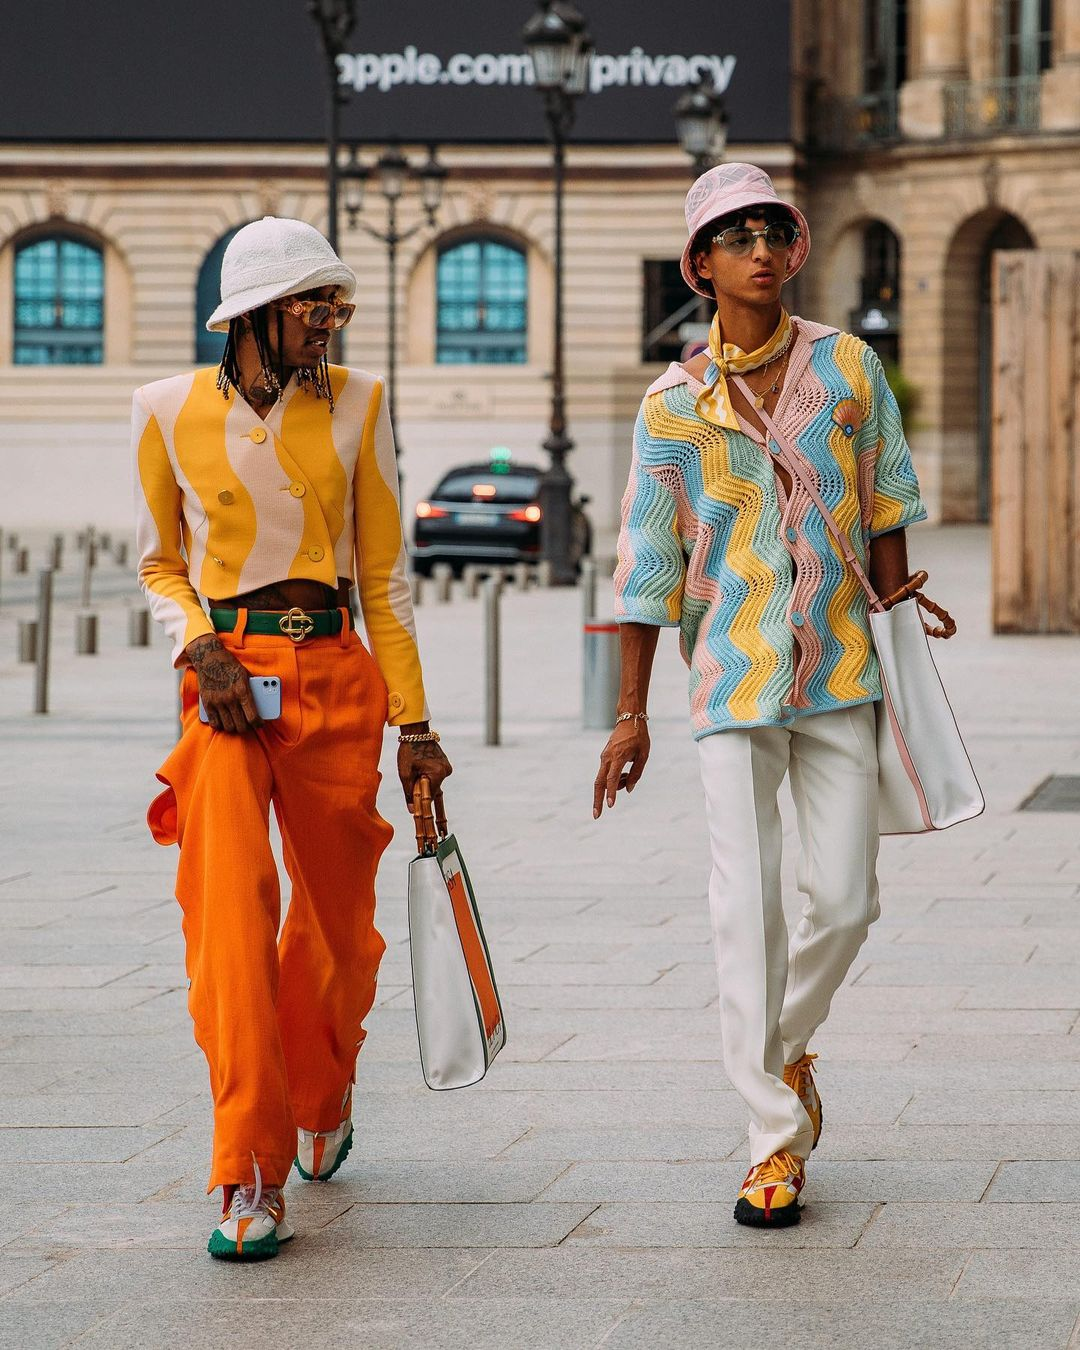 Two men walking in the street wearing bright shirts and hats